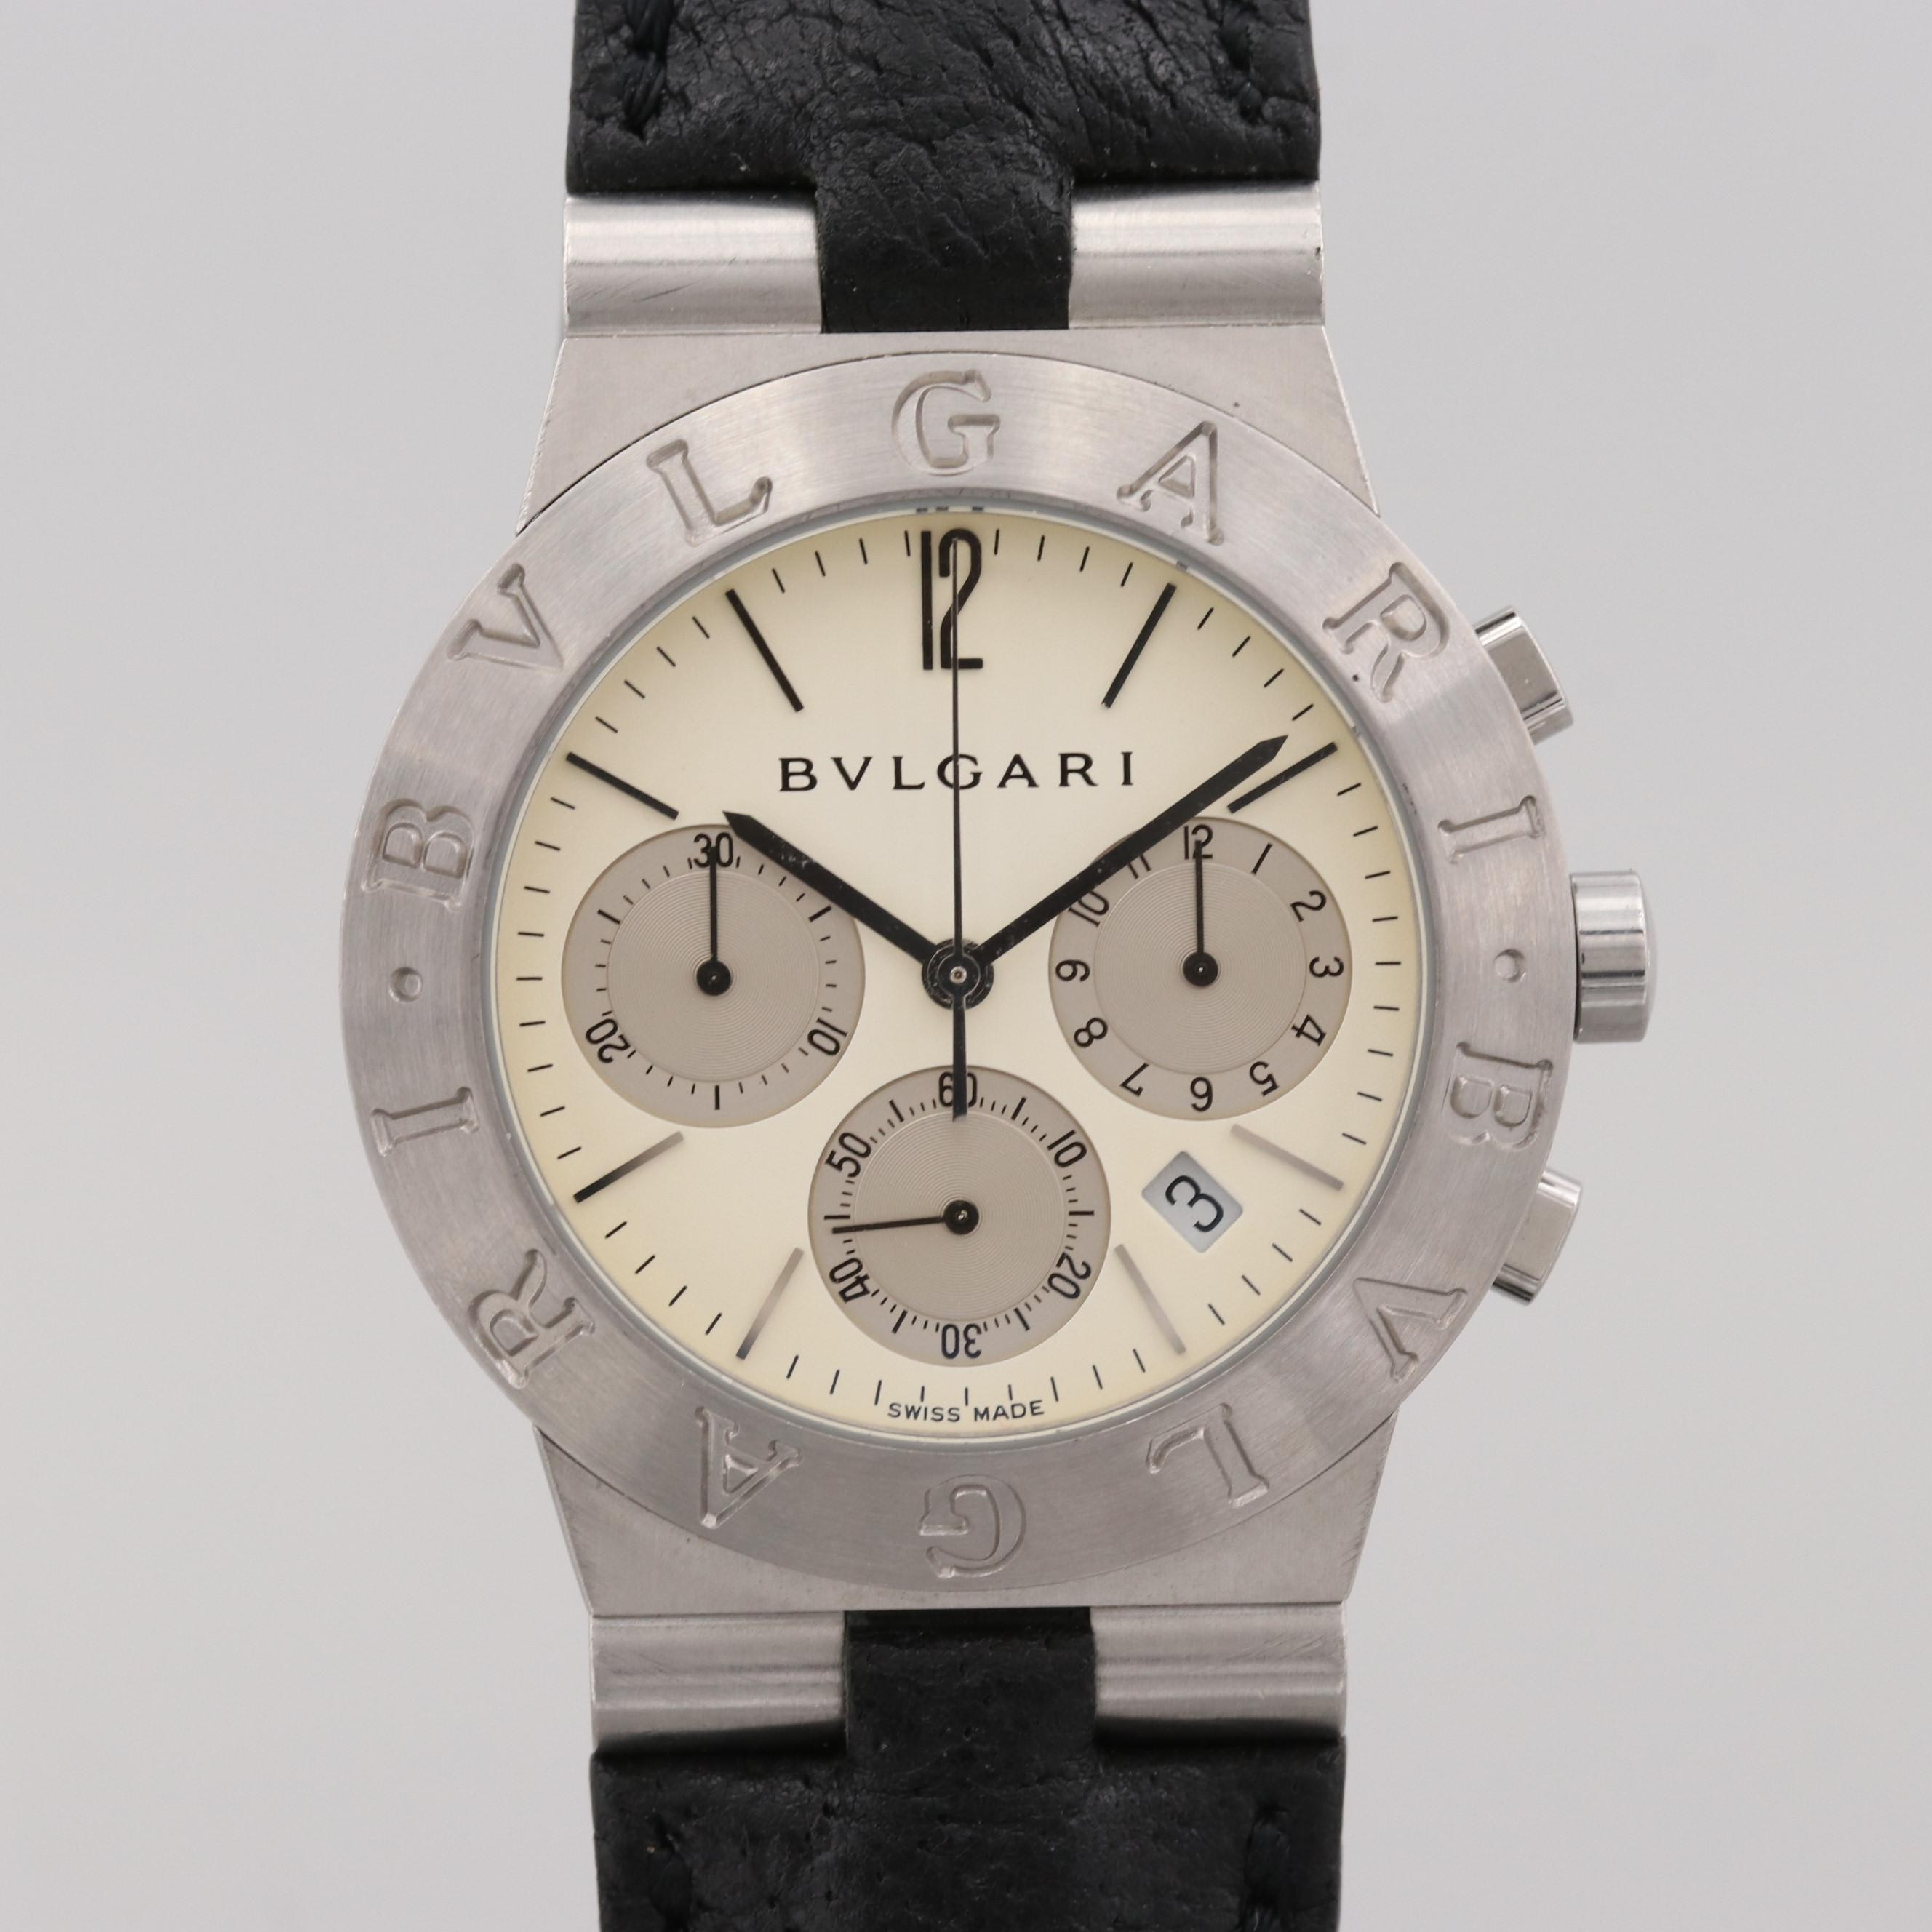 Bulgari Diagono Stainless Steel Quartz Chronograph Wristwatch